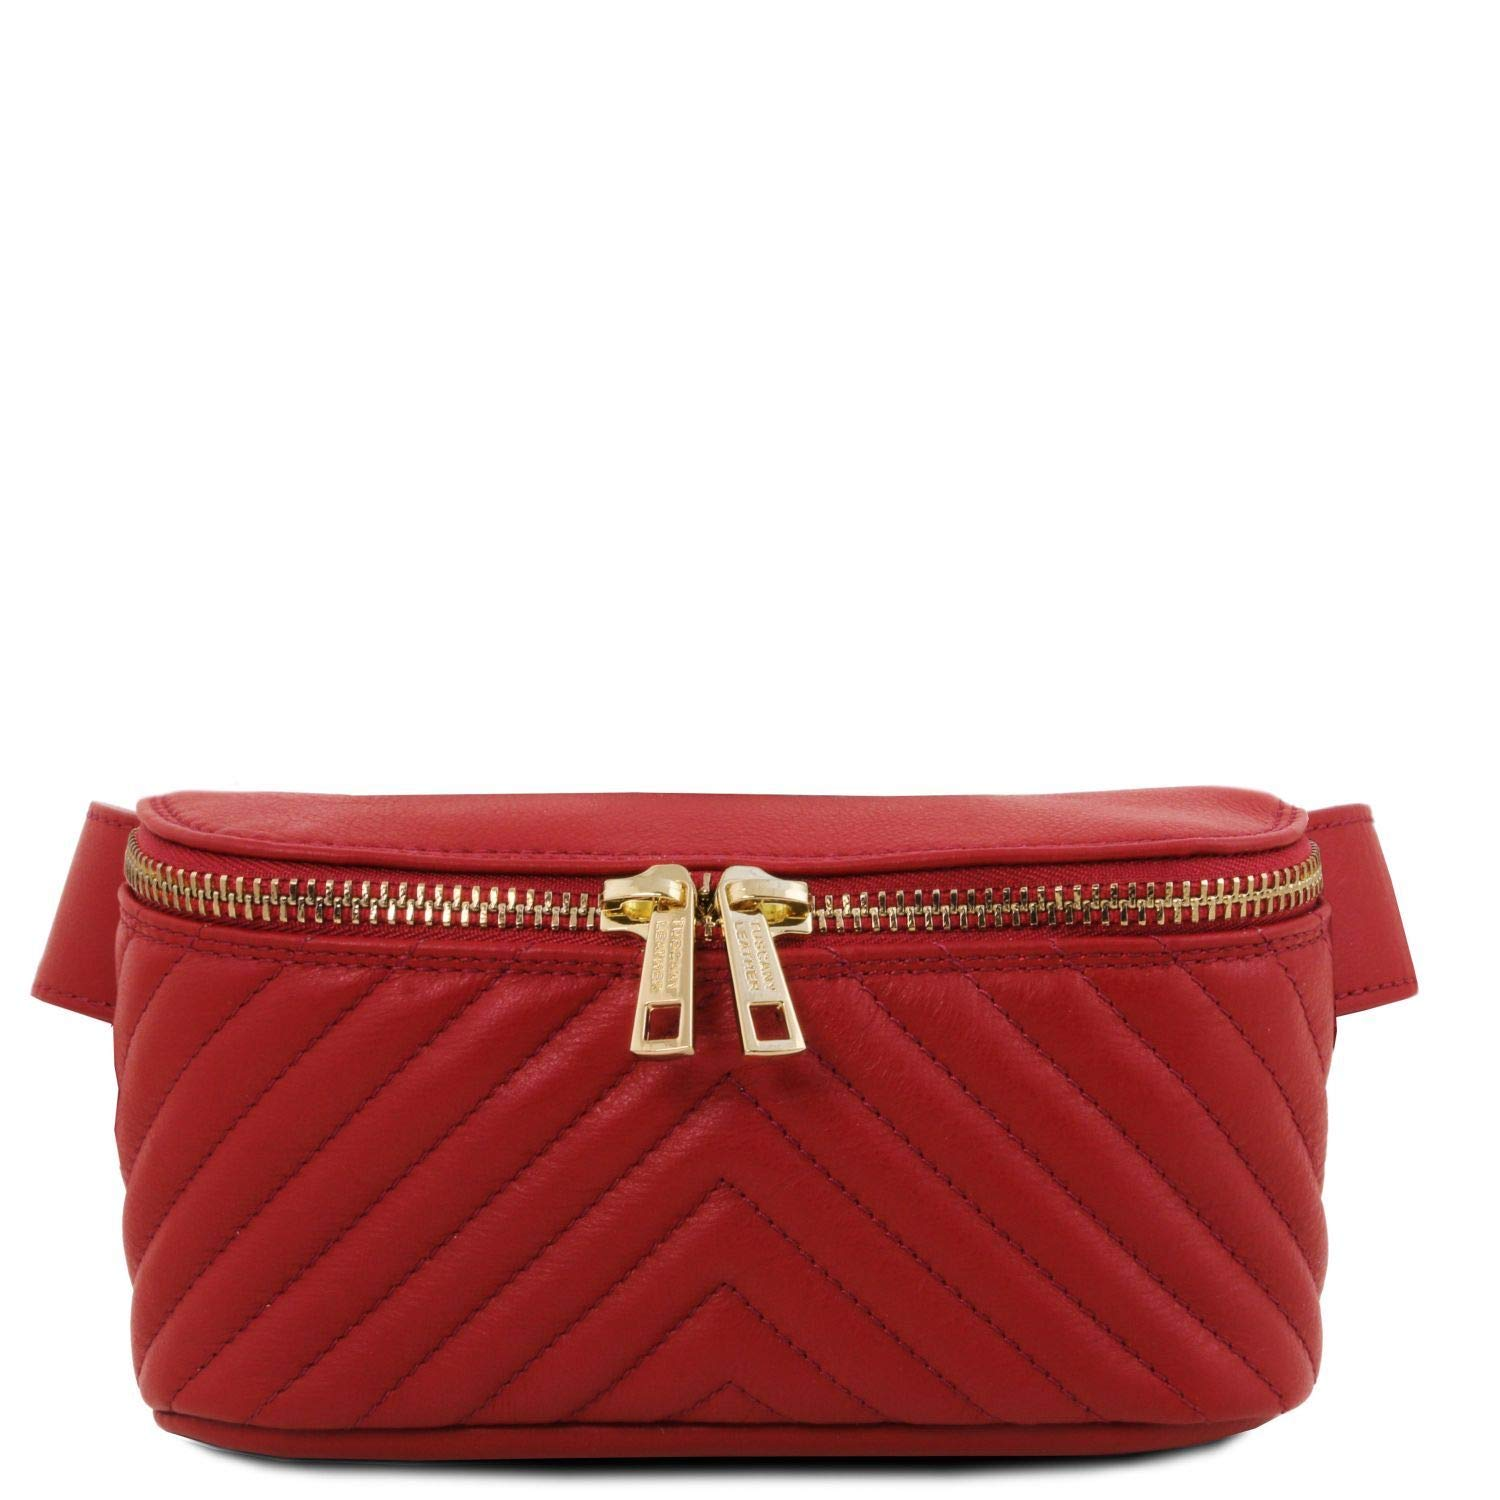 Tuscany Leather TLBag Soft leather fanny pack Red